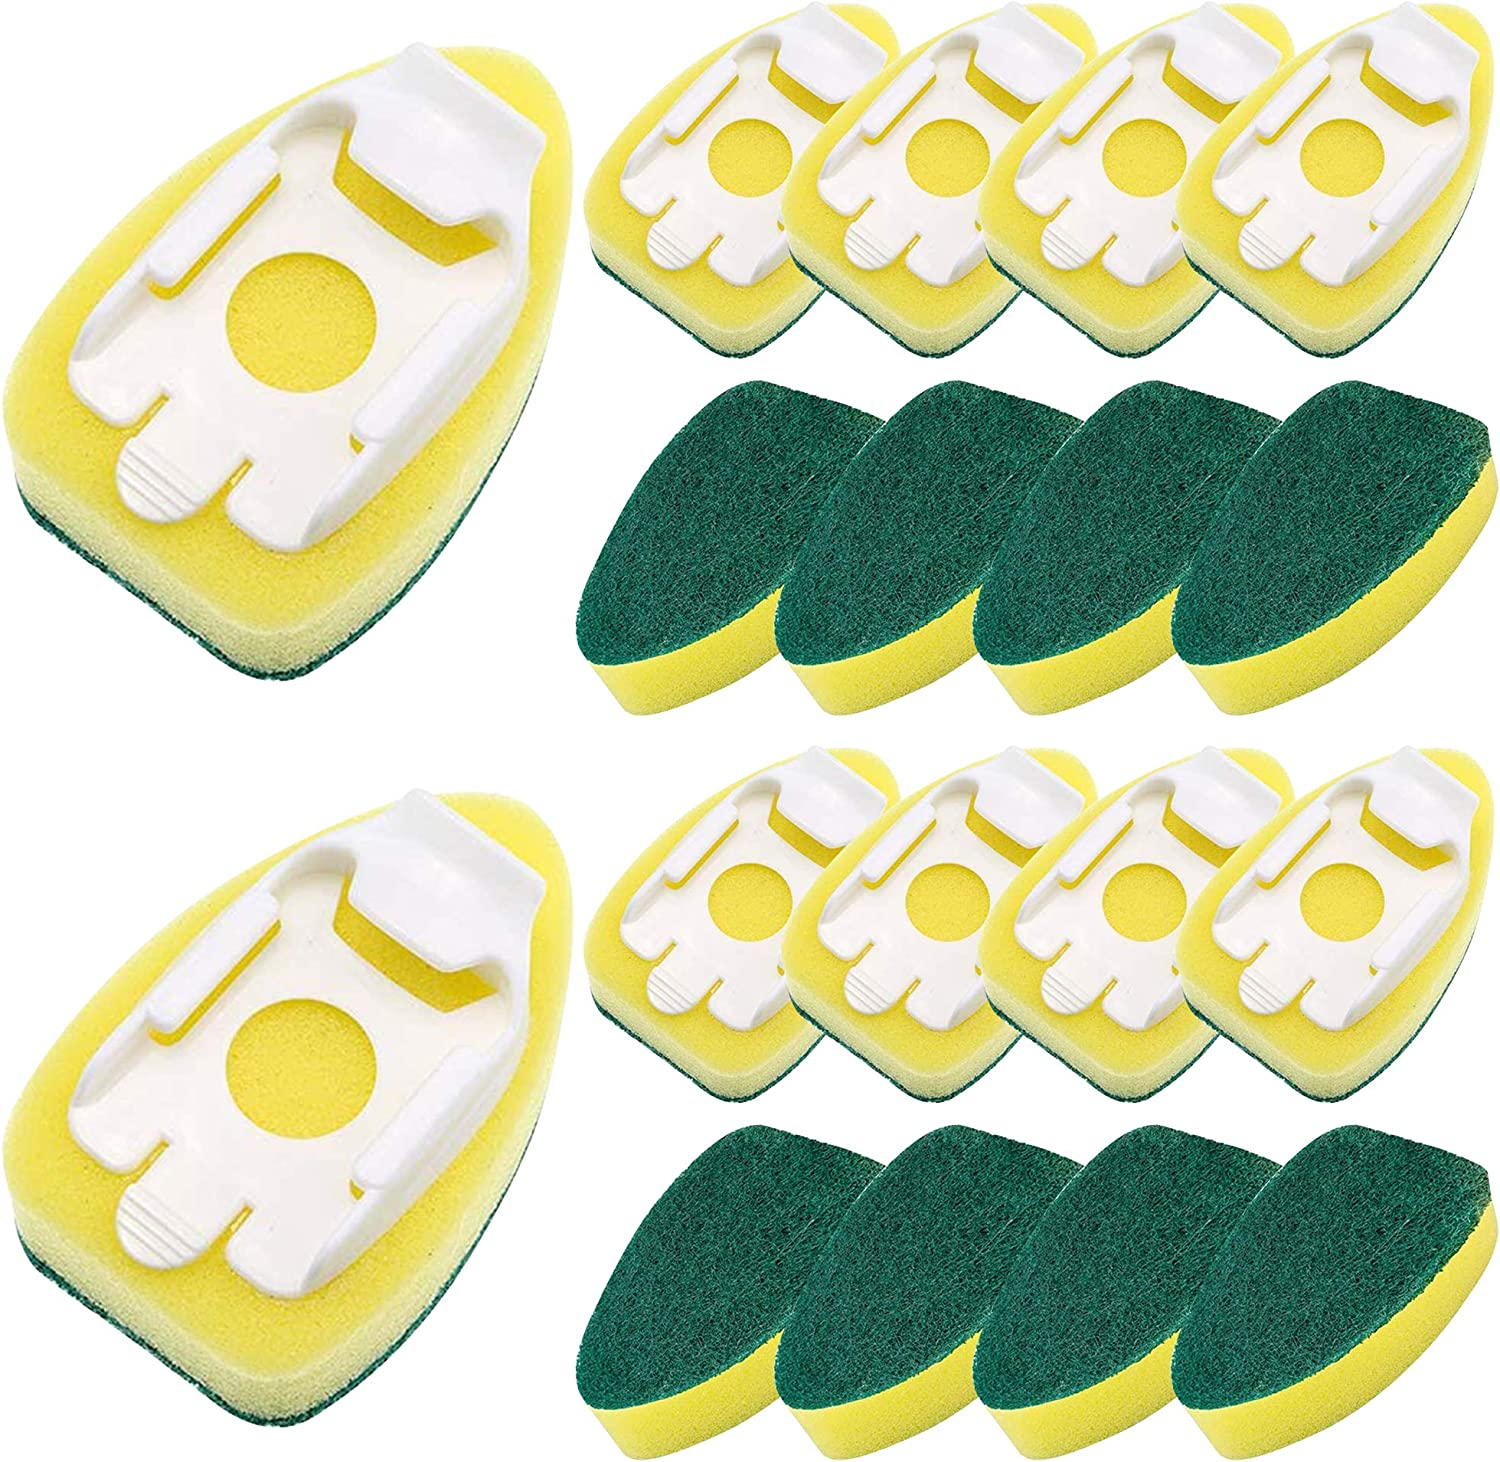 15 Pack Dish Refills Sponge Heads Brush Replacement Sponge Refill Sponge Pads for Kitchen Room Cleaning Supplies